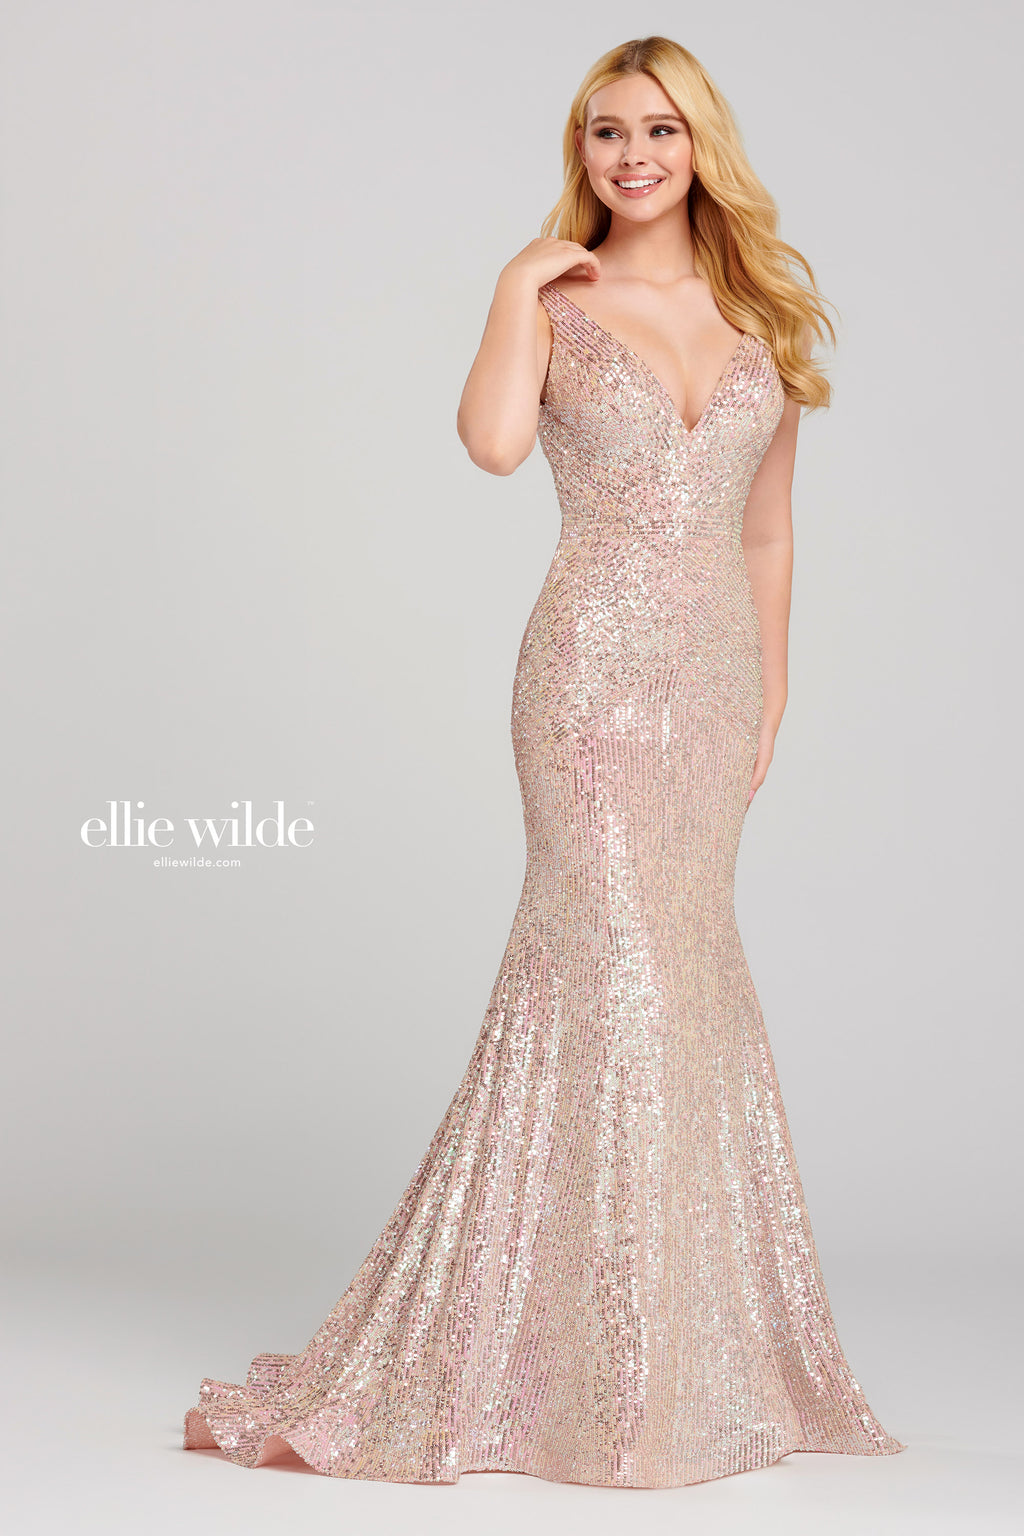 Ellie Wilde Sequin Pink Evening Gown - Gissings Boutique